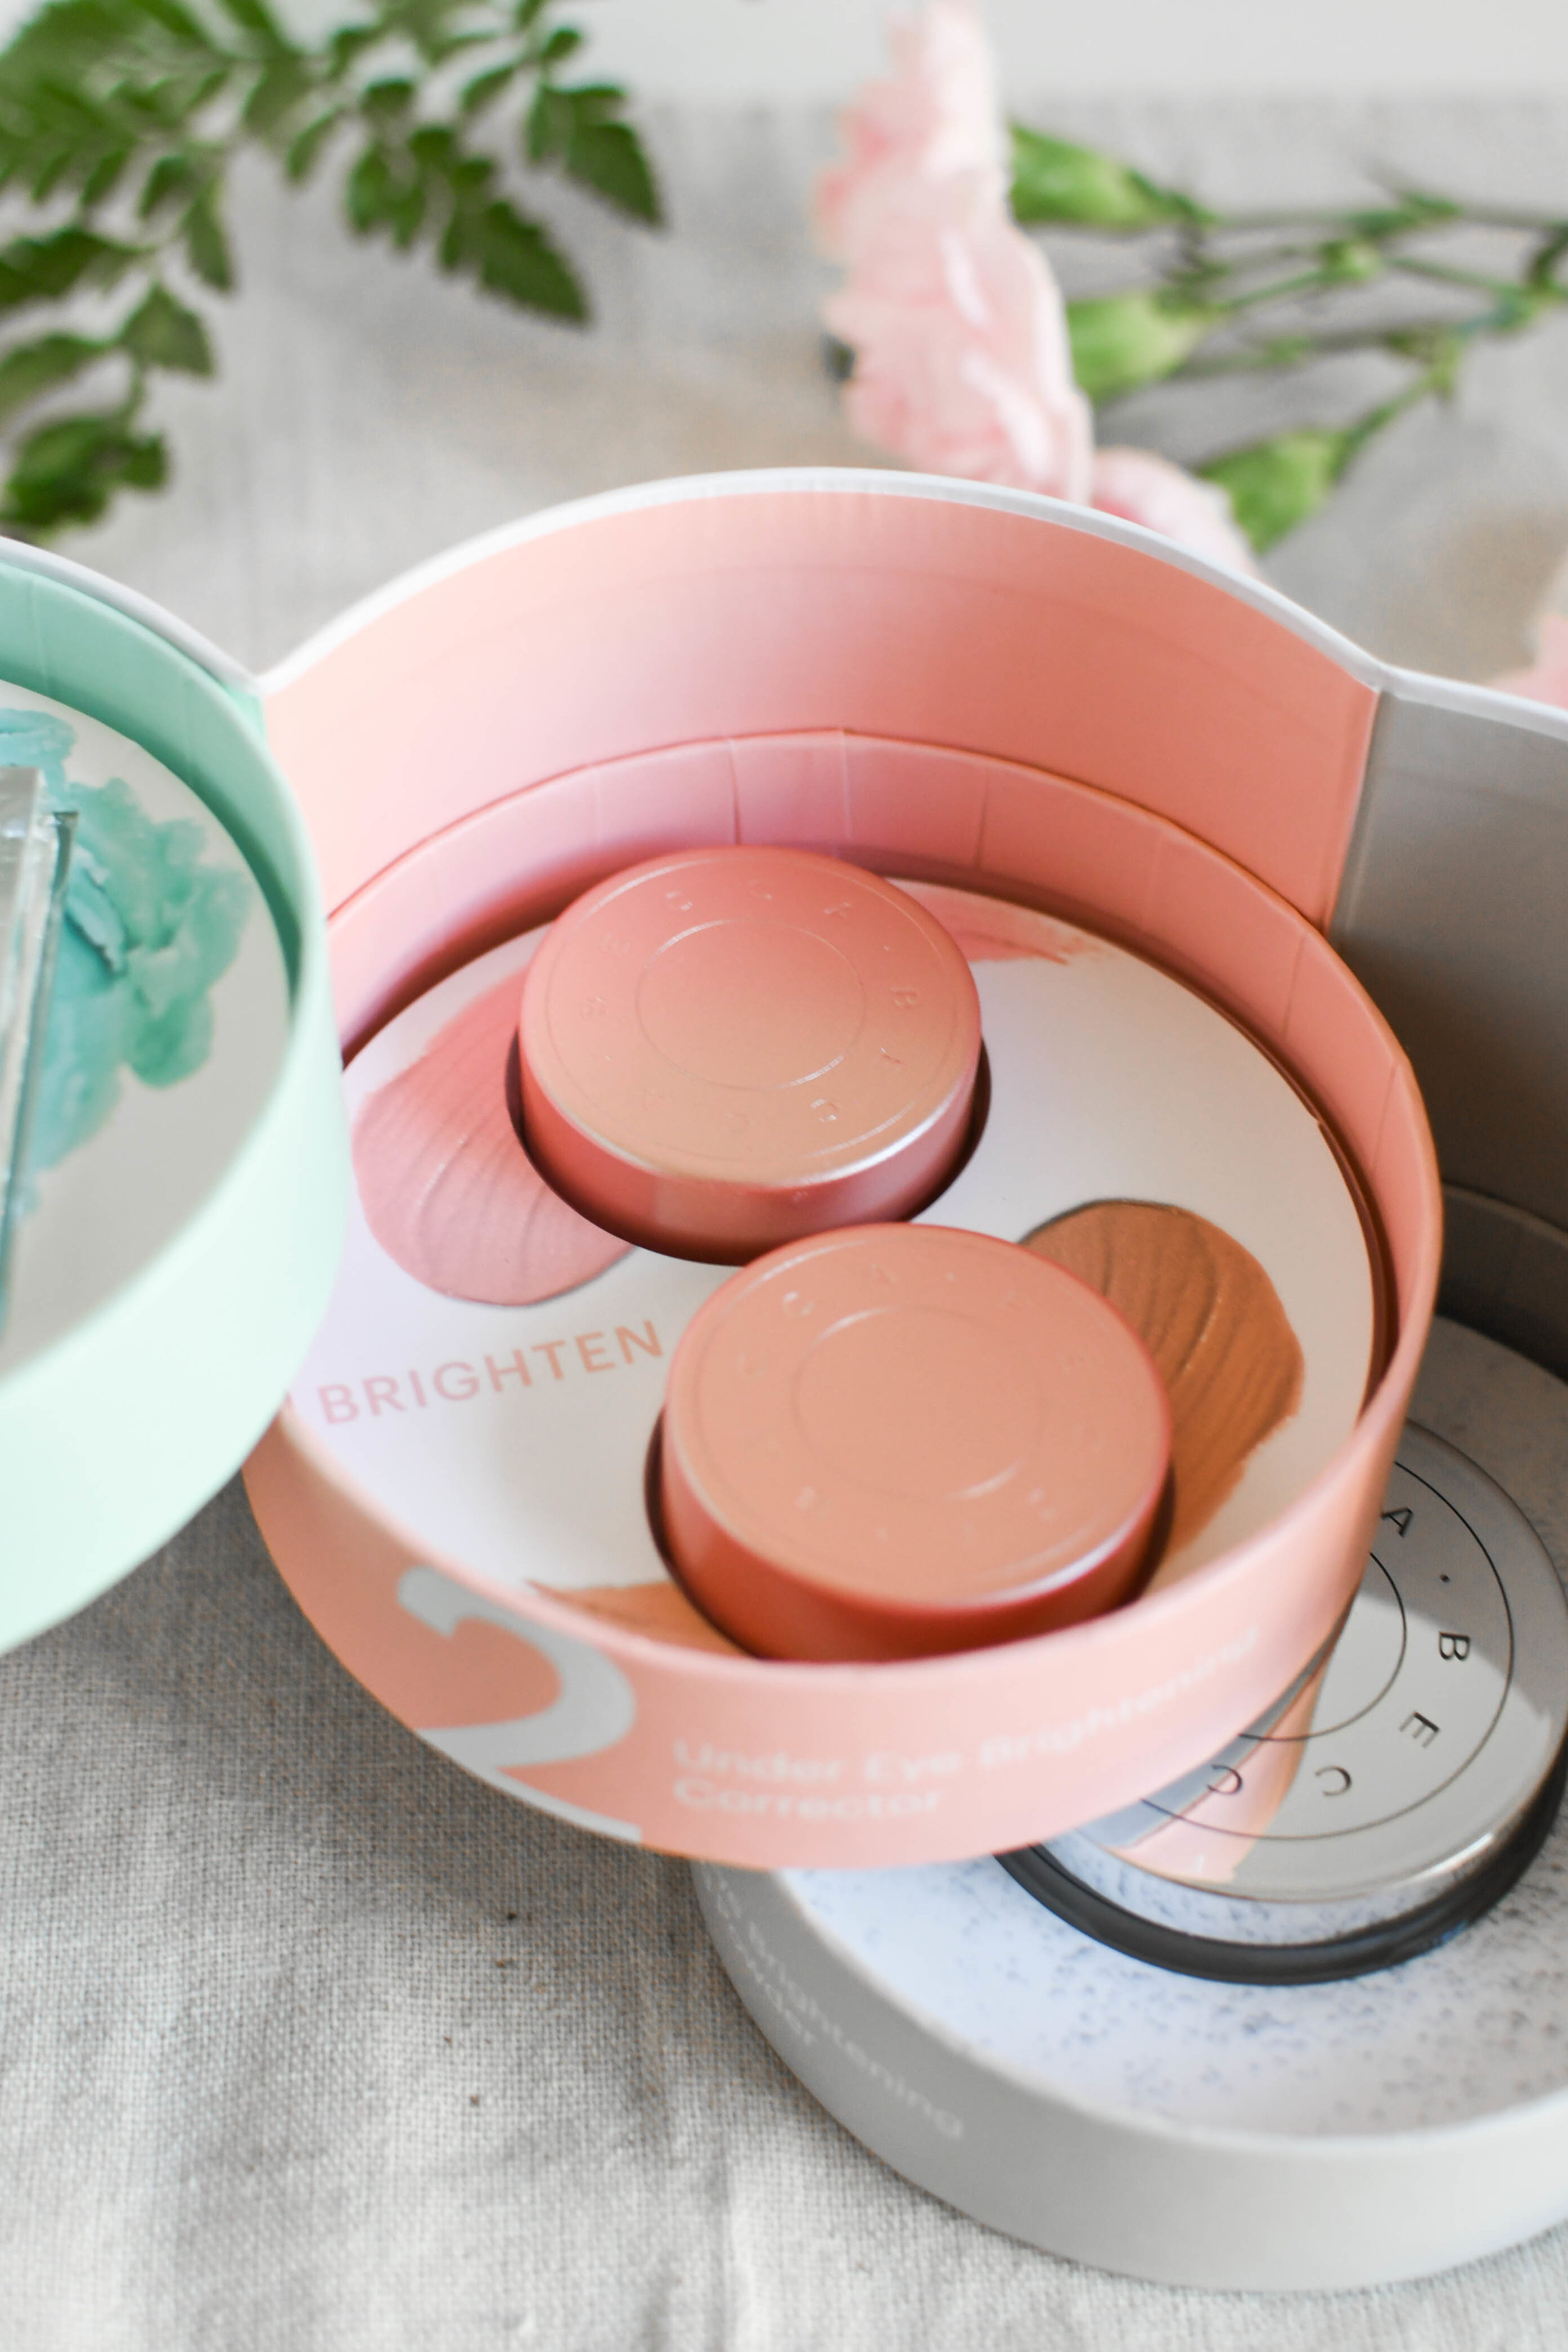 Becca Cosmetics // Under Eye Brightening Corrector Review